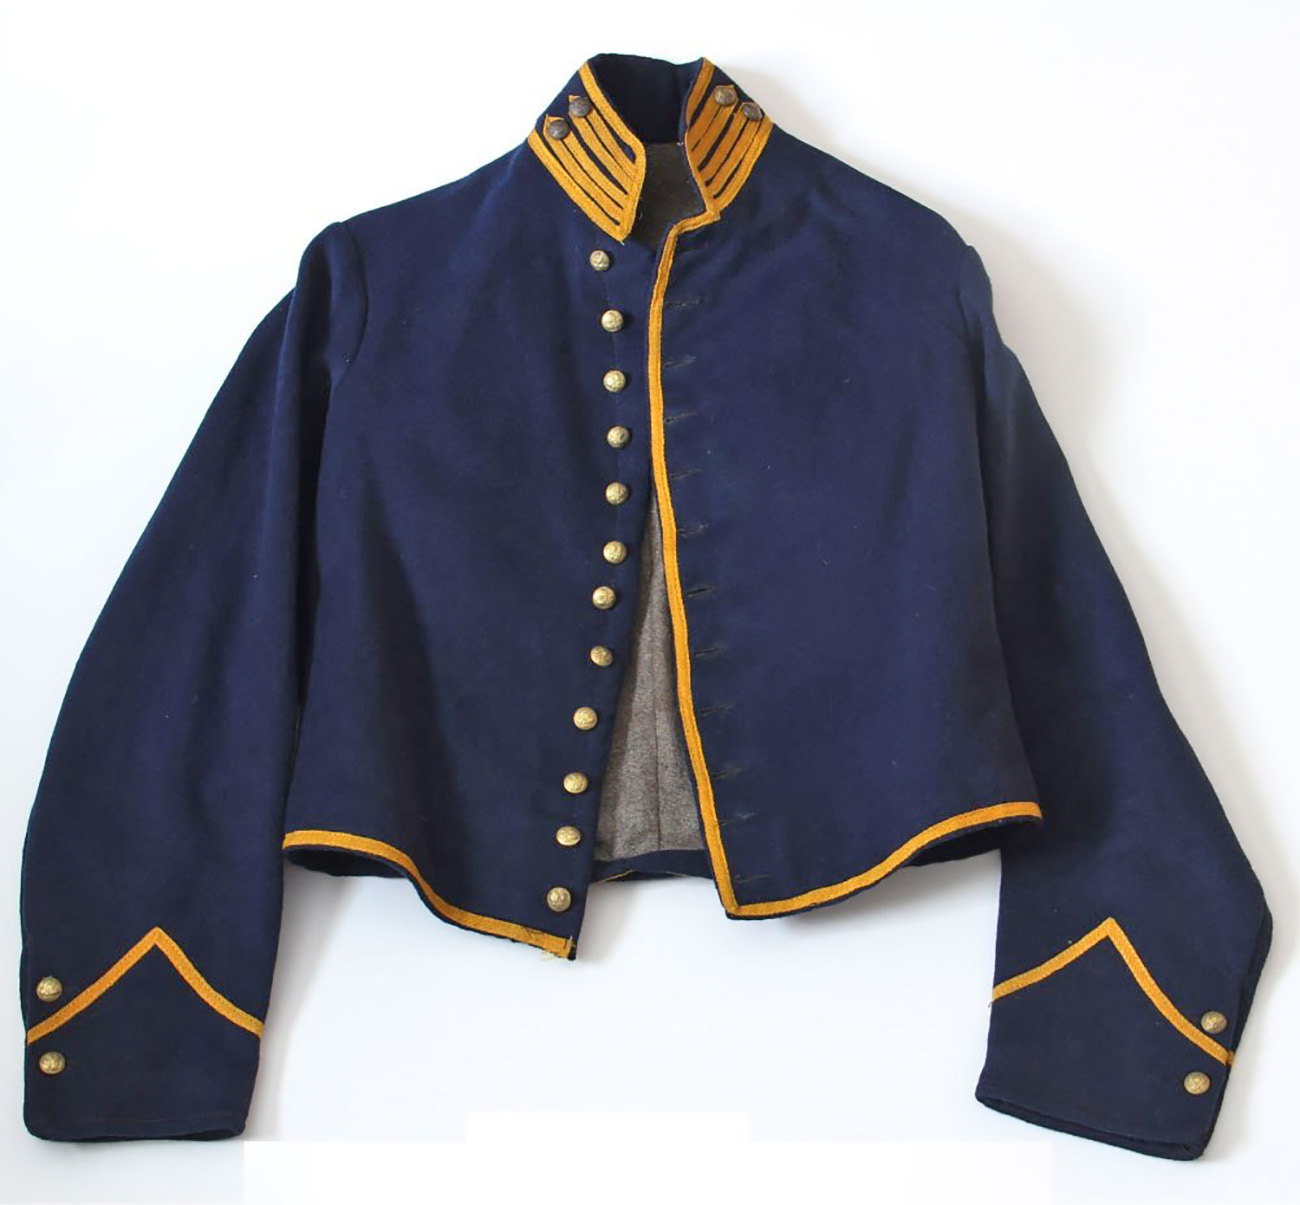 Civil War surplus shell jackets such as this example, piped yellow for cavalry, were popular choices amongst older soldiers for their smart and military appearance